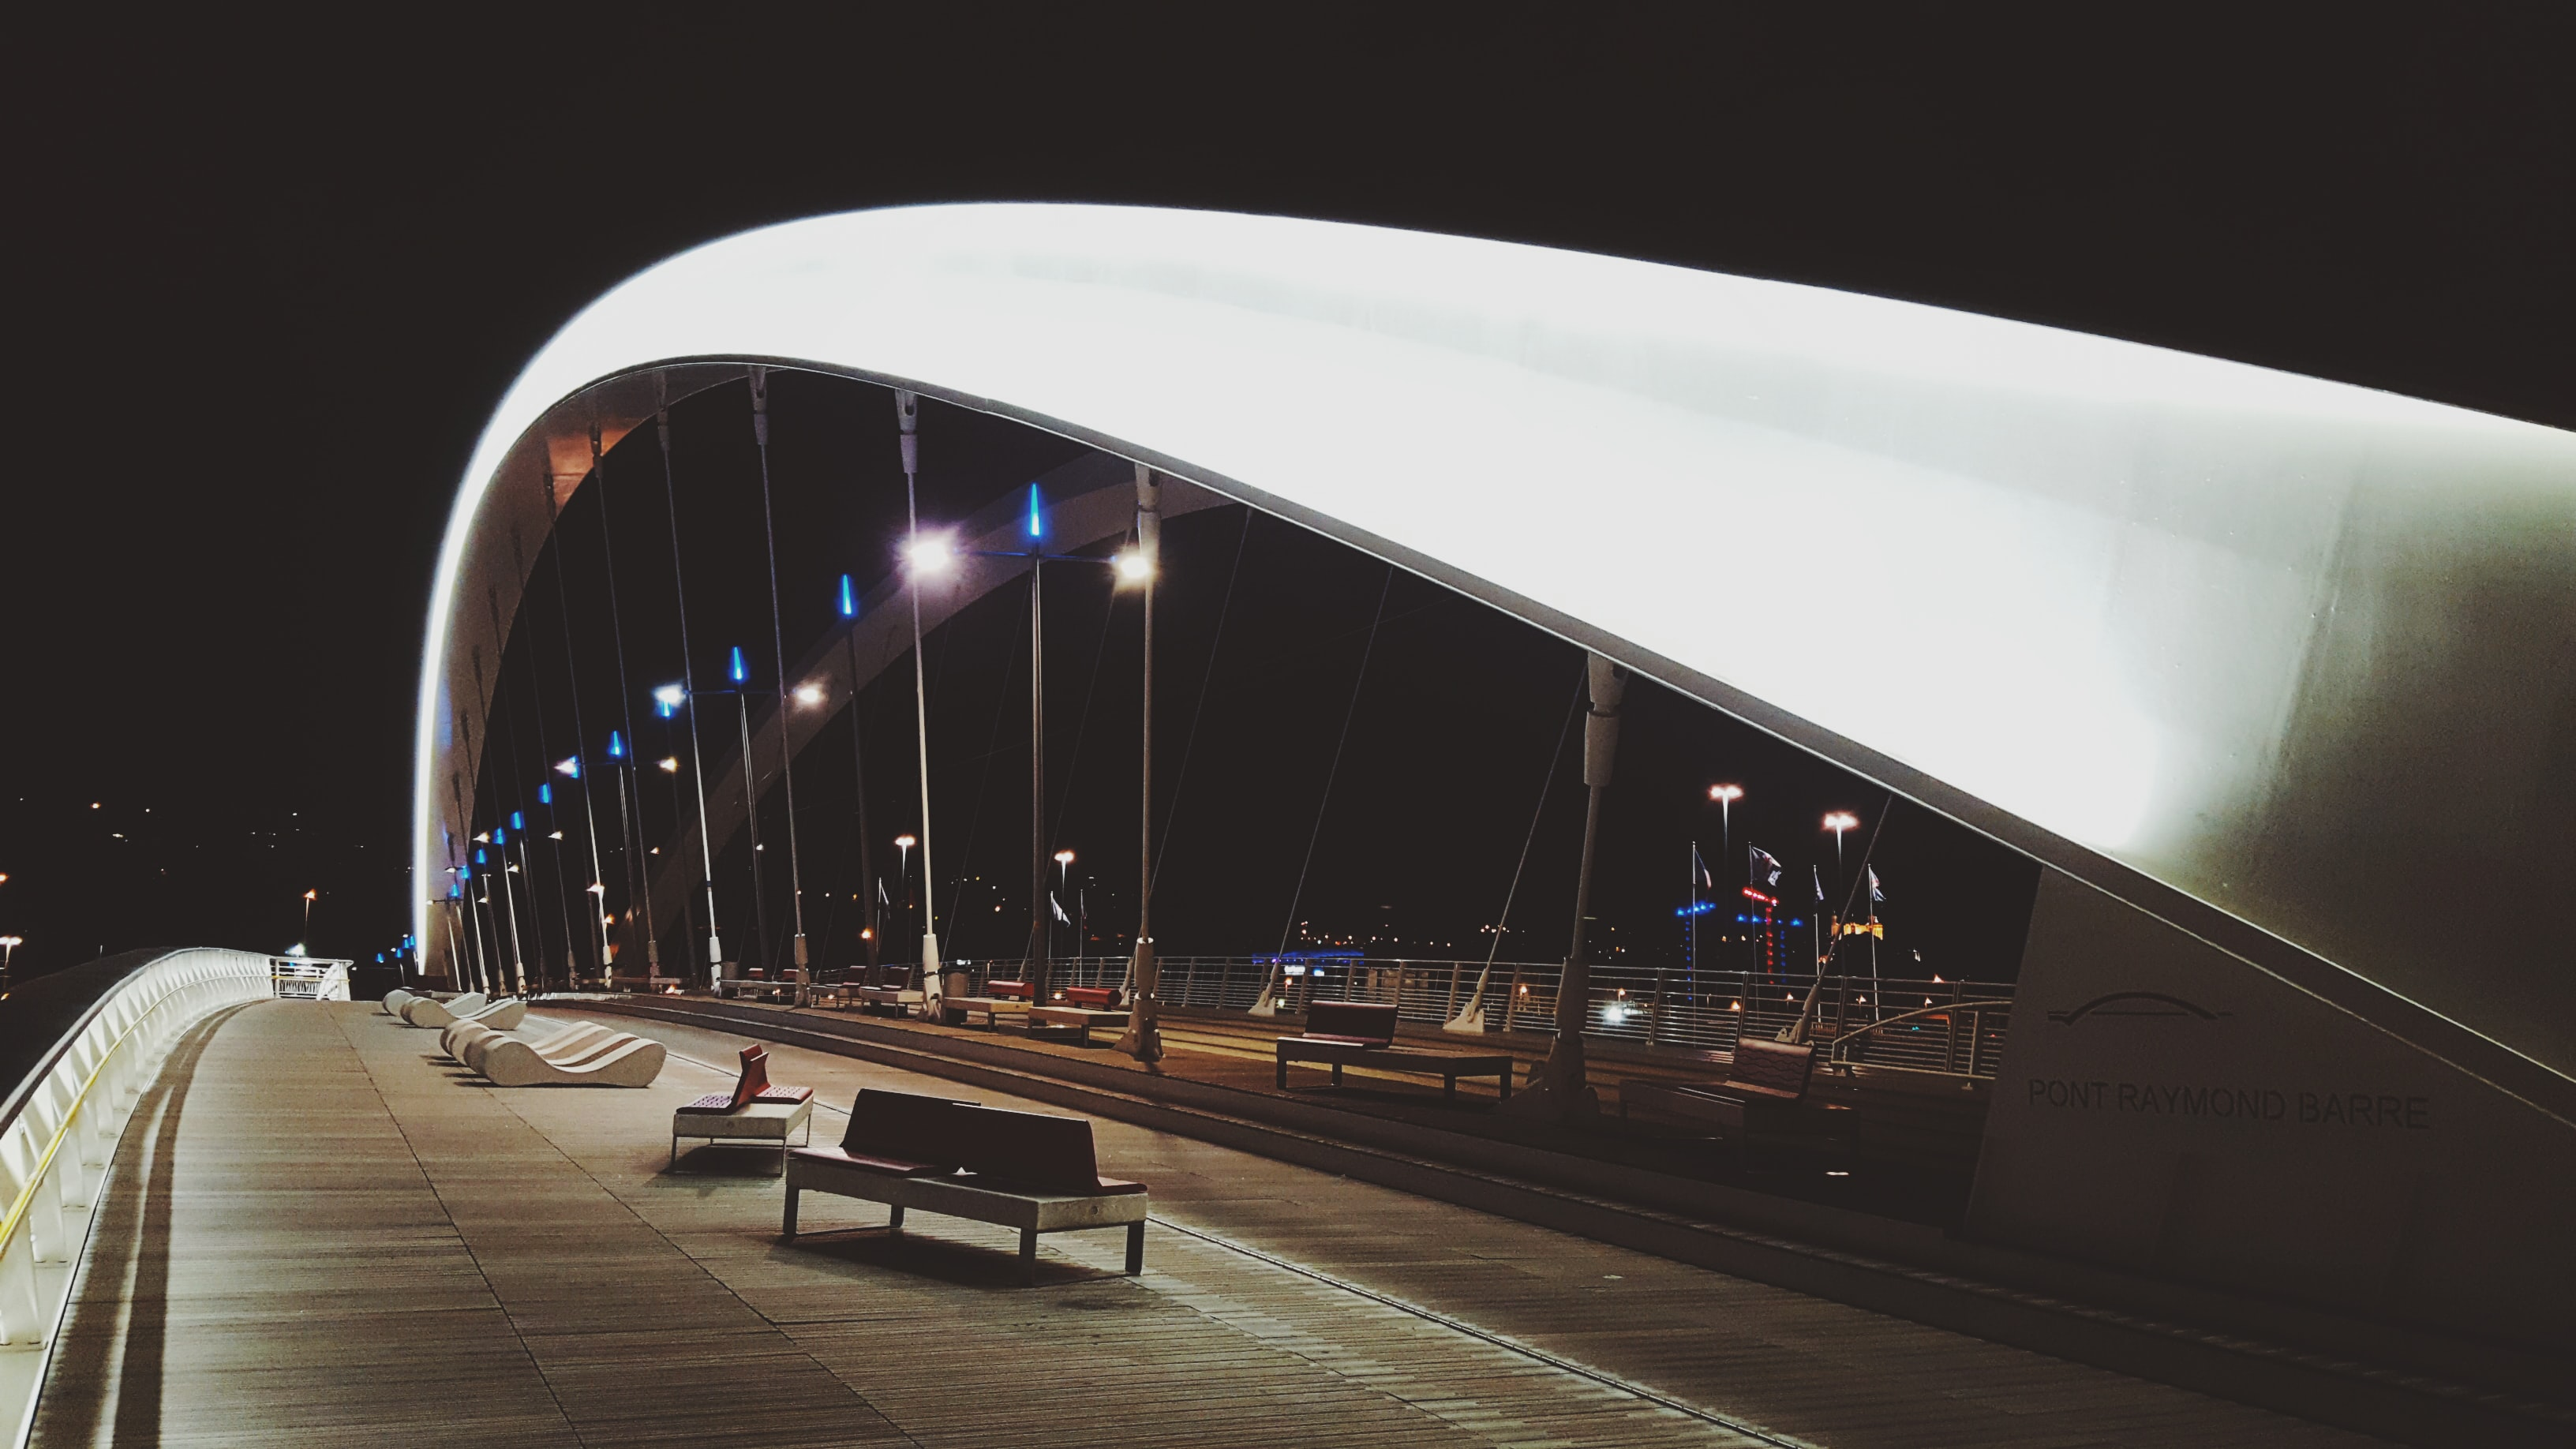 Pont Raymond-Barre at night with the arches and modern style benches along the bridge.